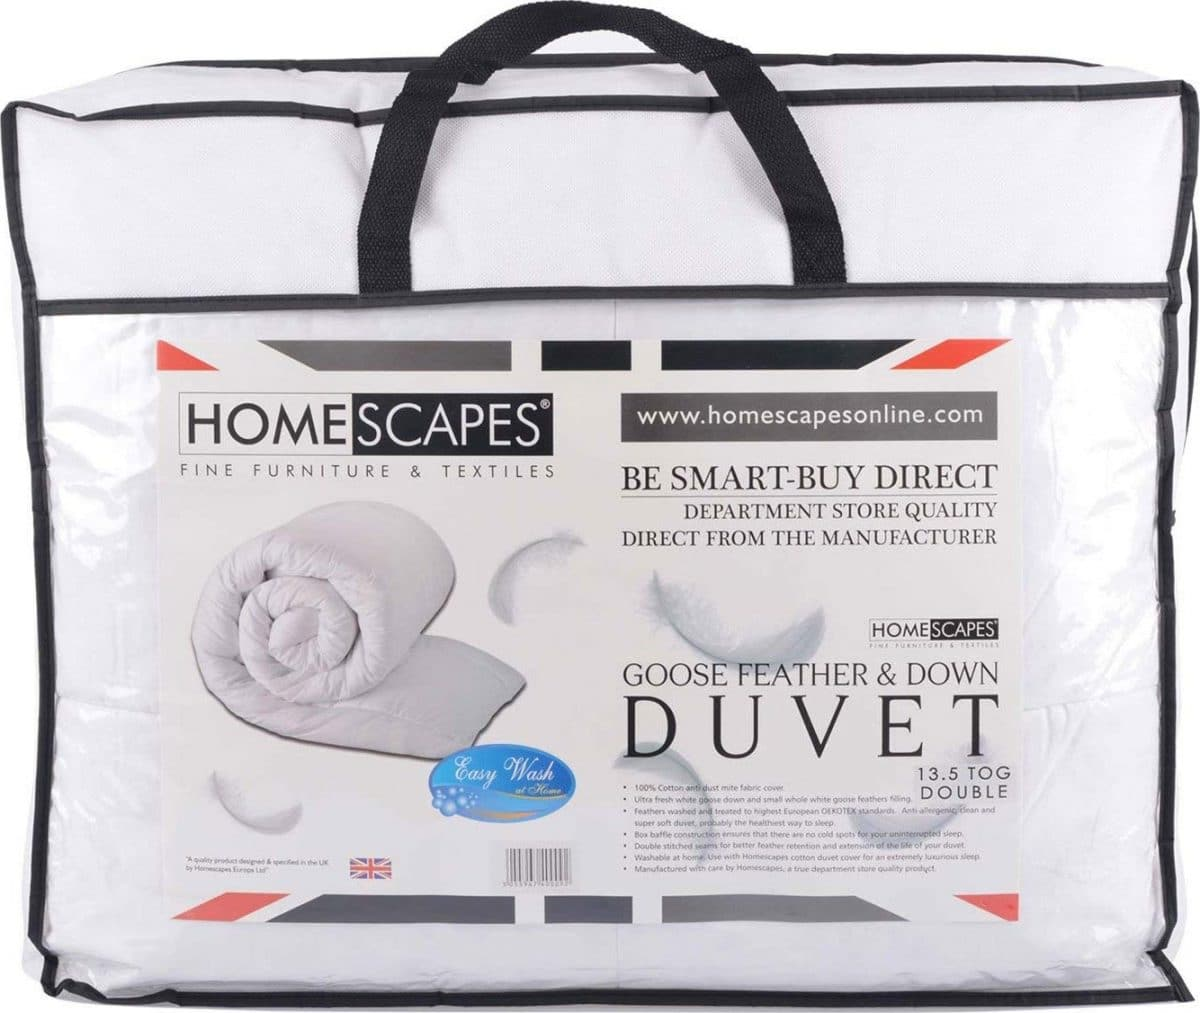 Marque couette Homescapes